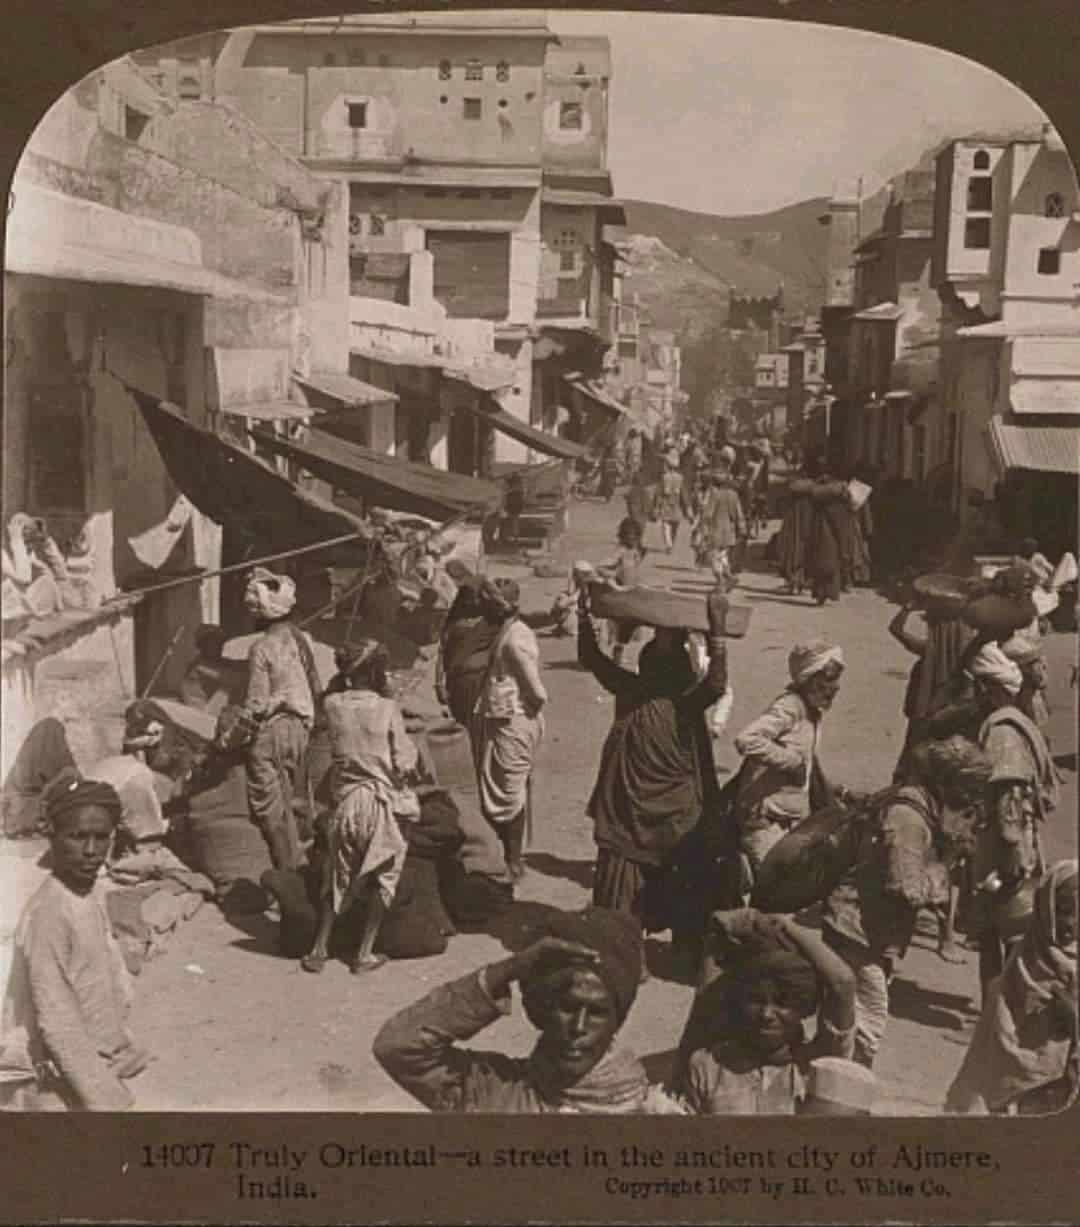 2.Vintage Pics Of Our India